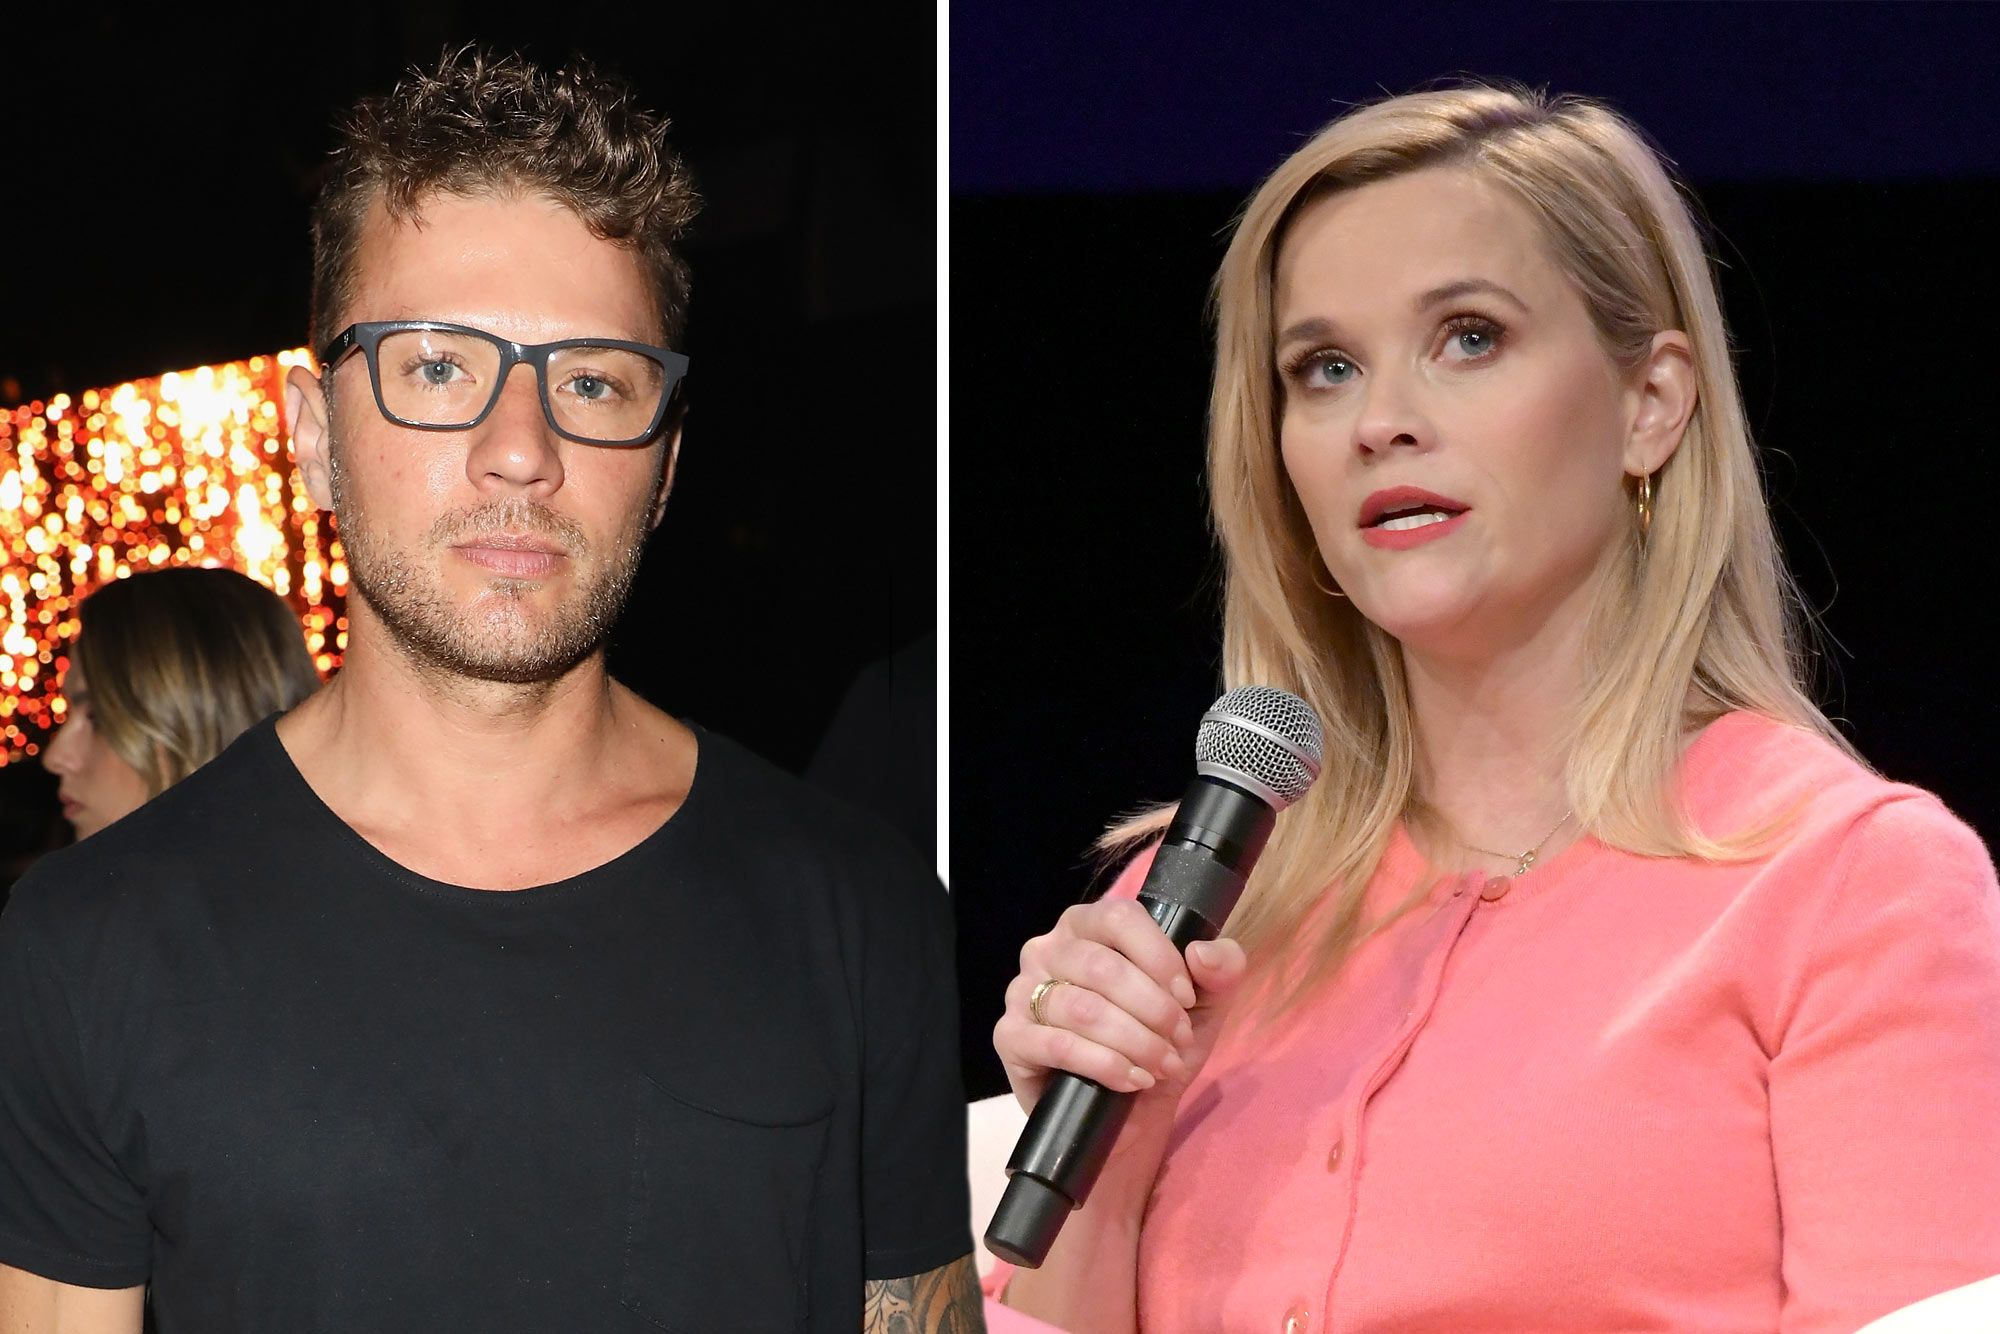 Reese Witherspoon meeting  Ryan Phillippe can Destroy her Marriage